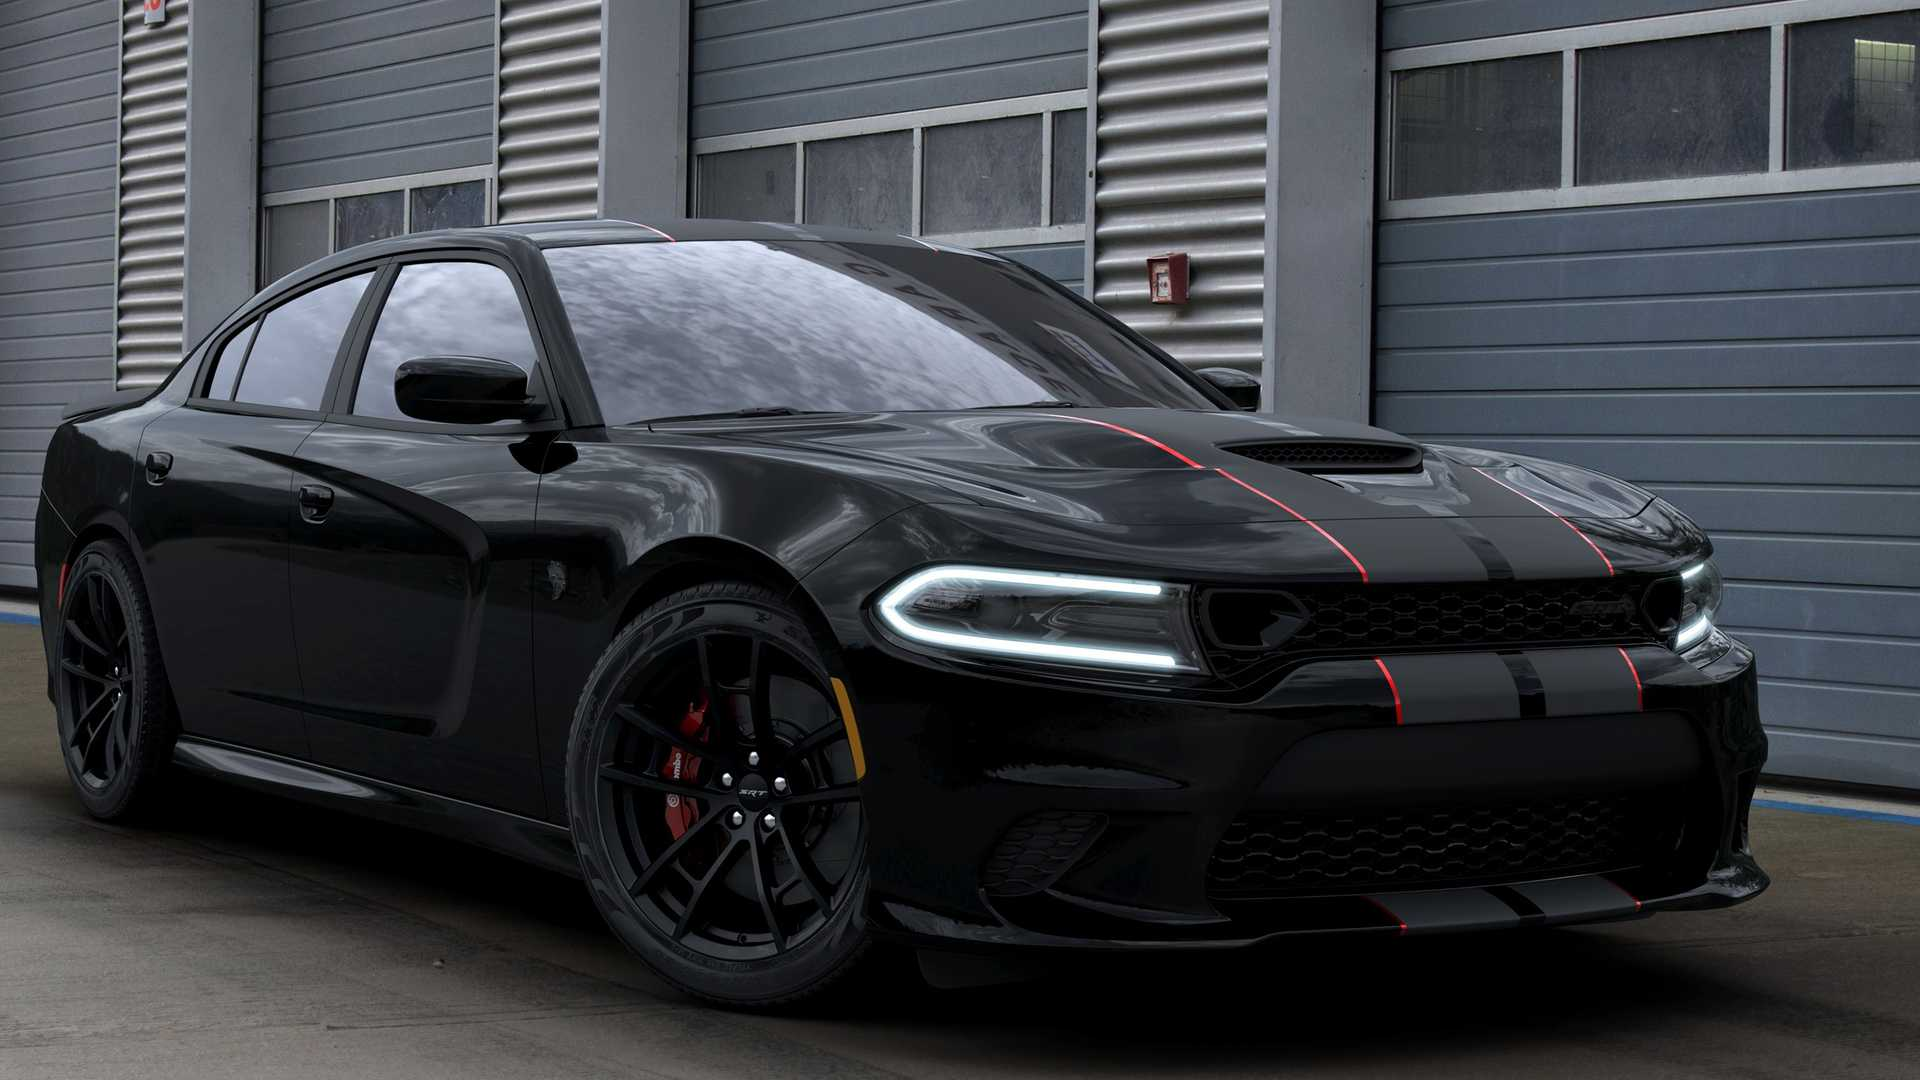 Fast And Furious 6 Cars Hd Wallpaper Dodge Rolls Out Charger Srt Hellcat Octane Edition